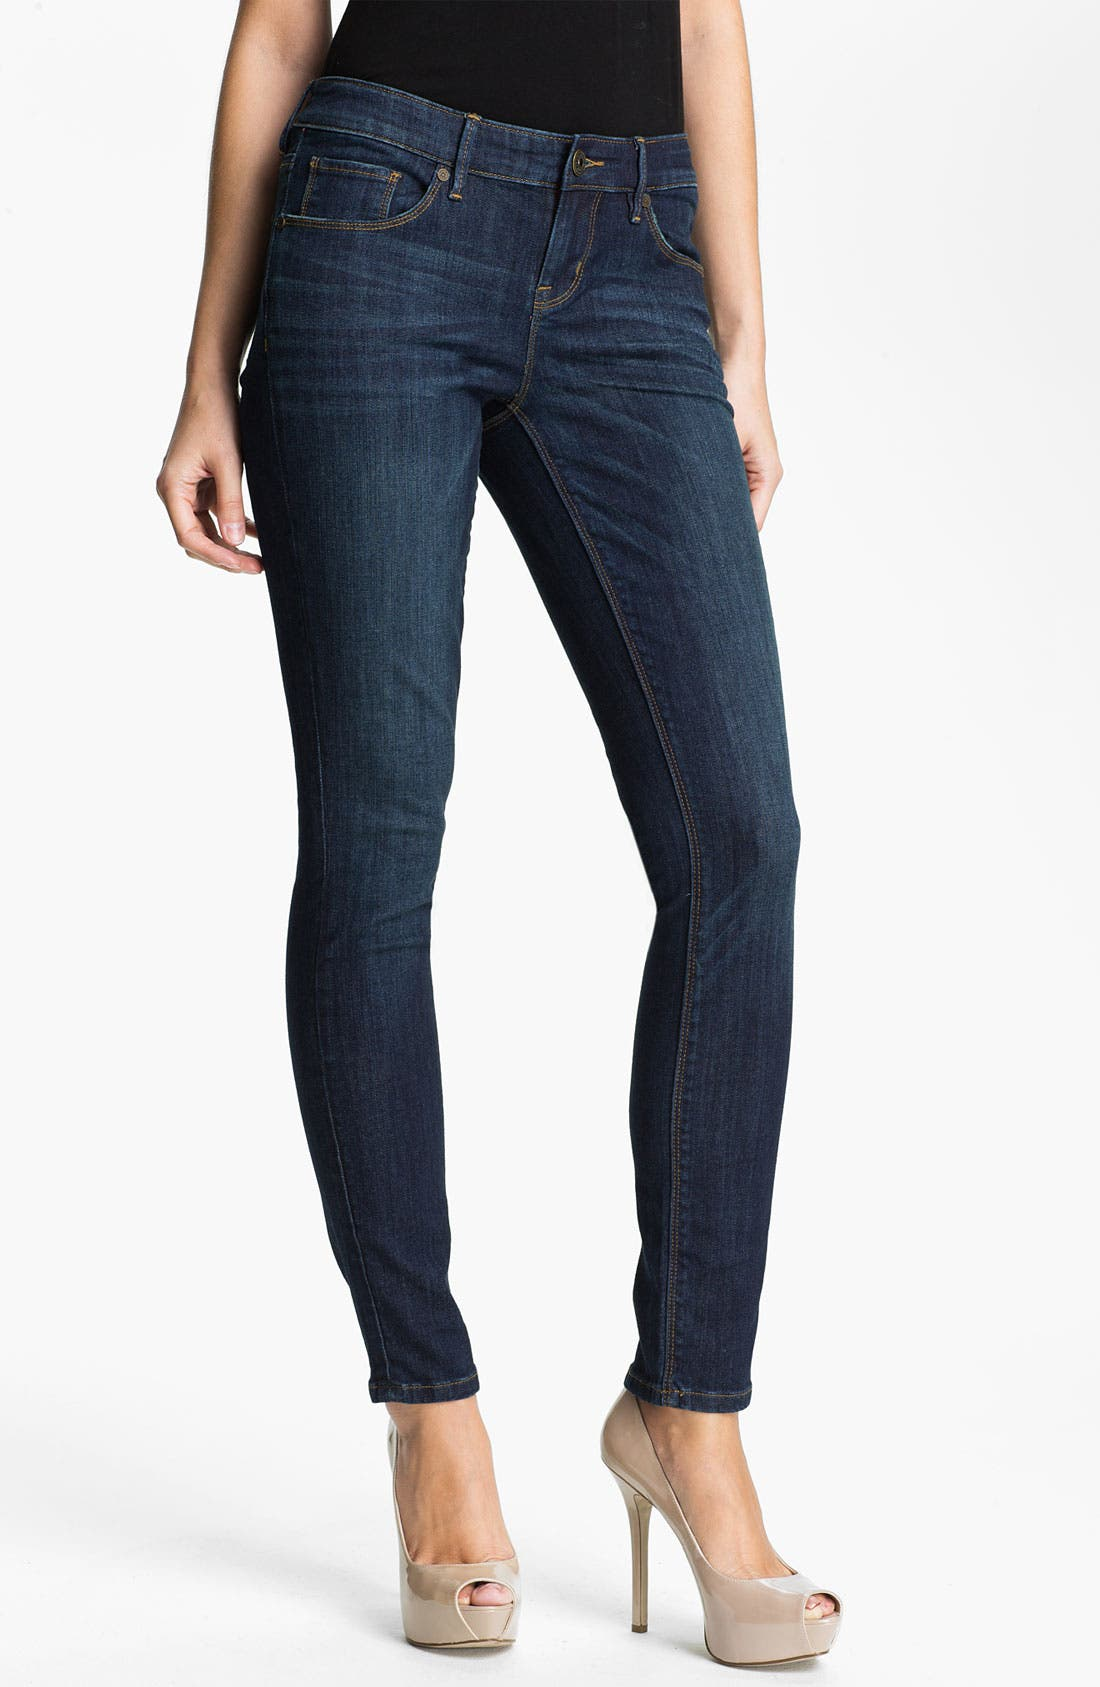 Alternate Image 1 Selected - Isaac Mizrahi Jeans 'Samantha' Skinny Jeans